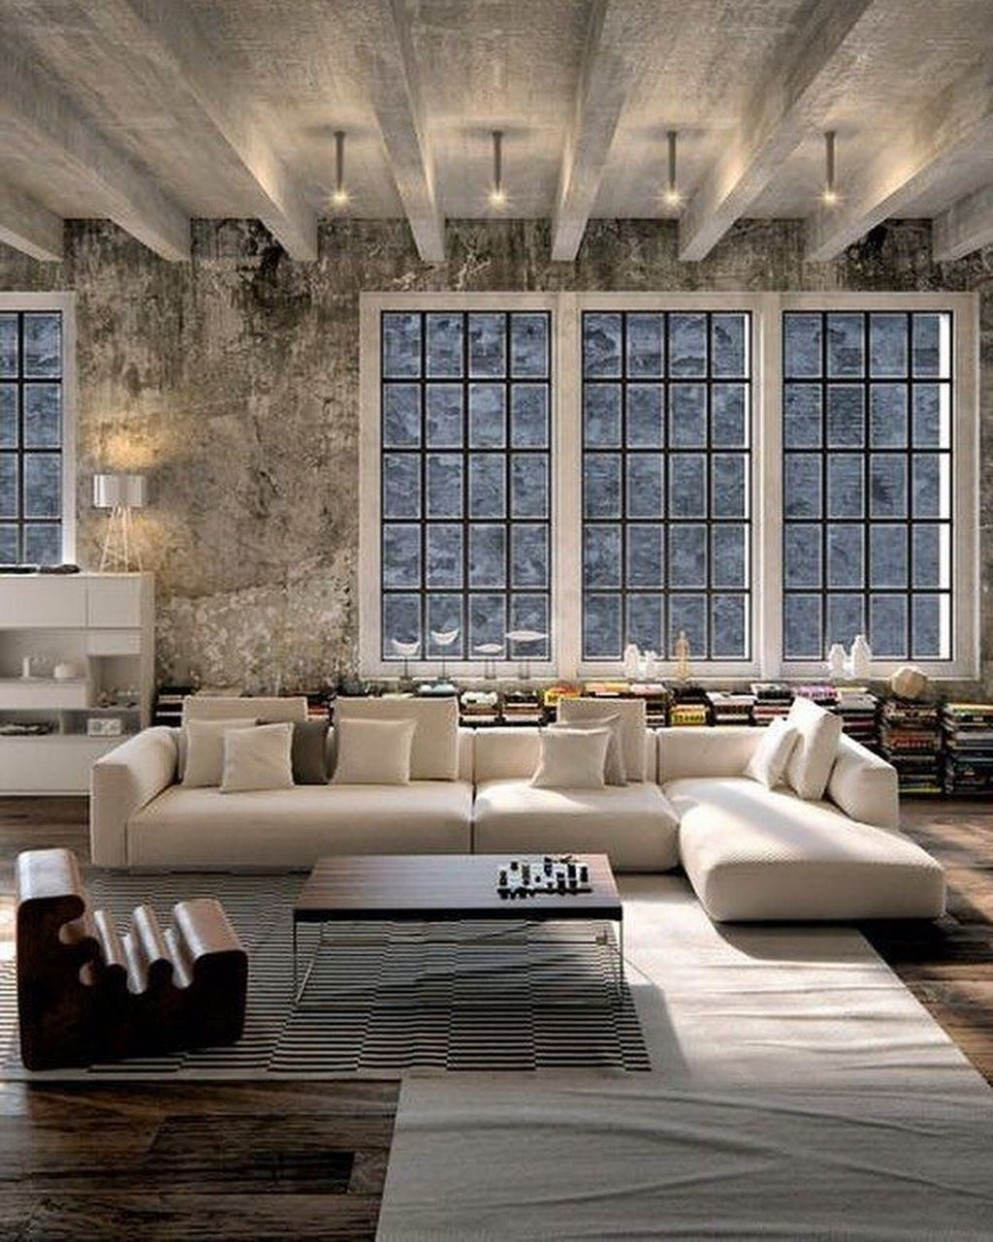 12 Stunning Loft Apartment Decorating Ideas - Loft Apartment Decor Ideas